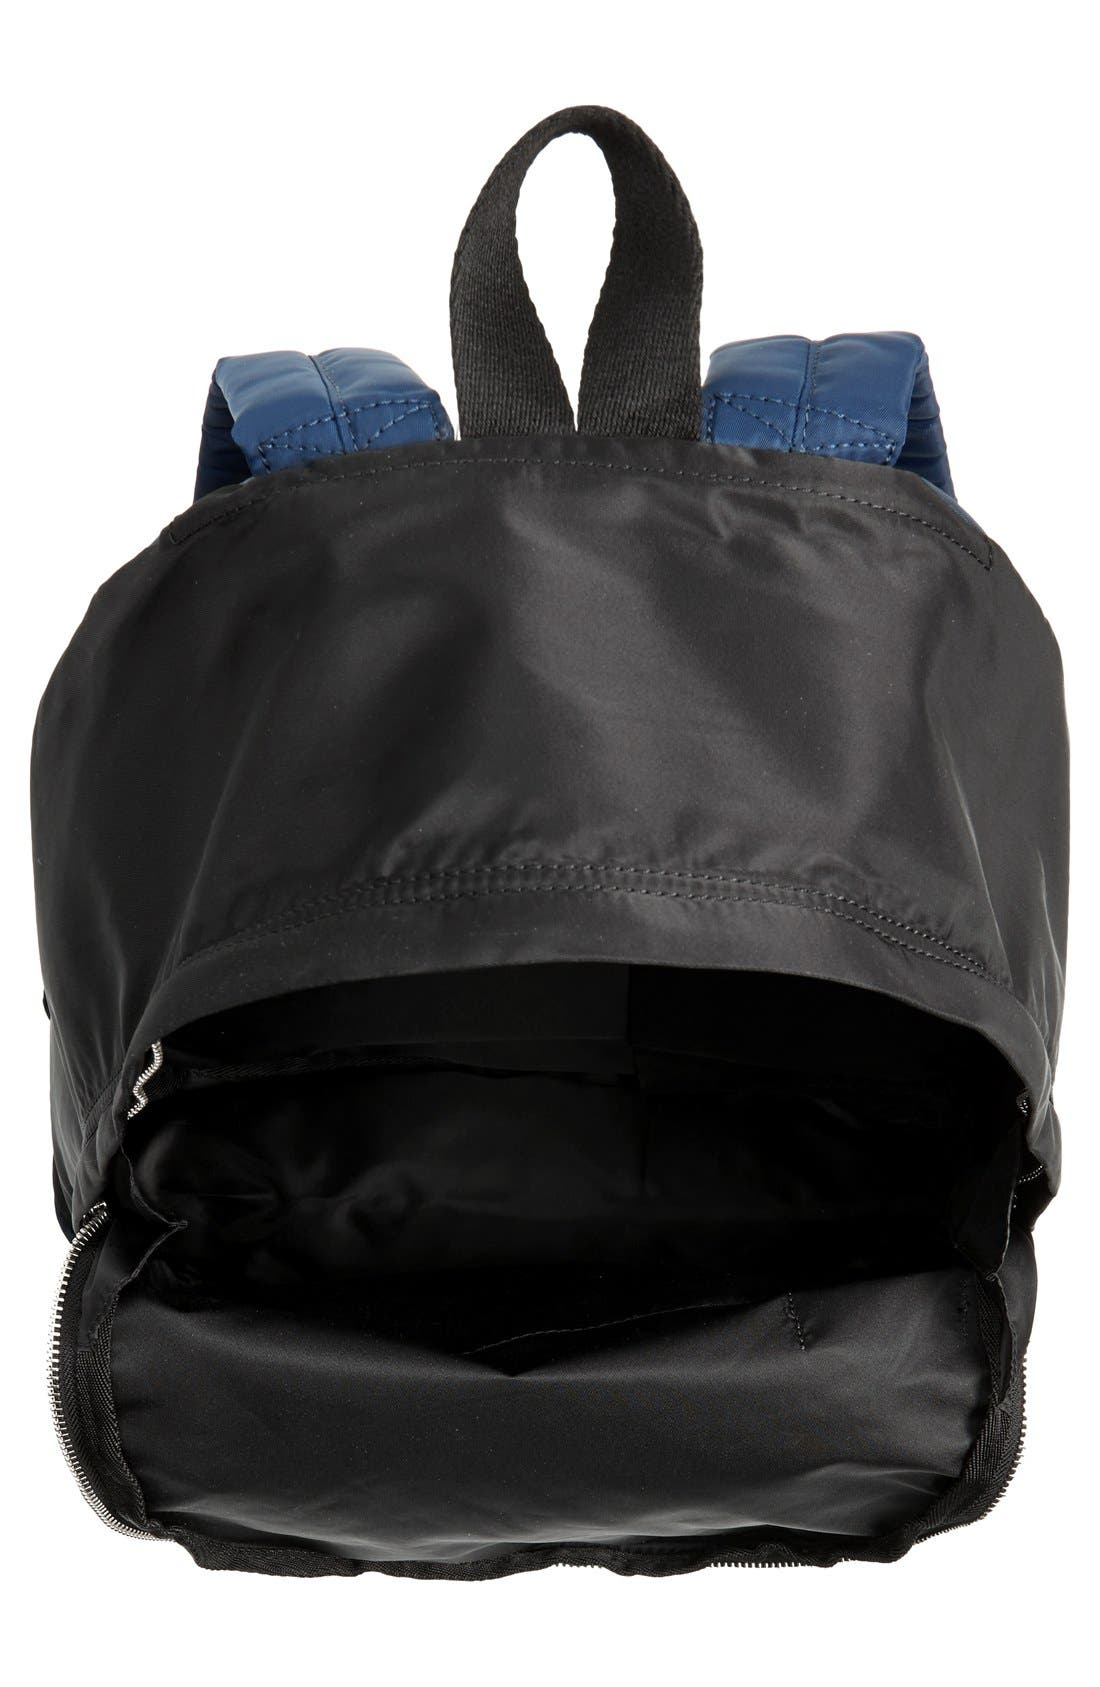 The Heights Adams Backpack,                             Alternate thumbnail 10, color,                             003